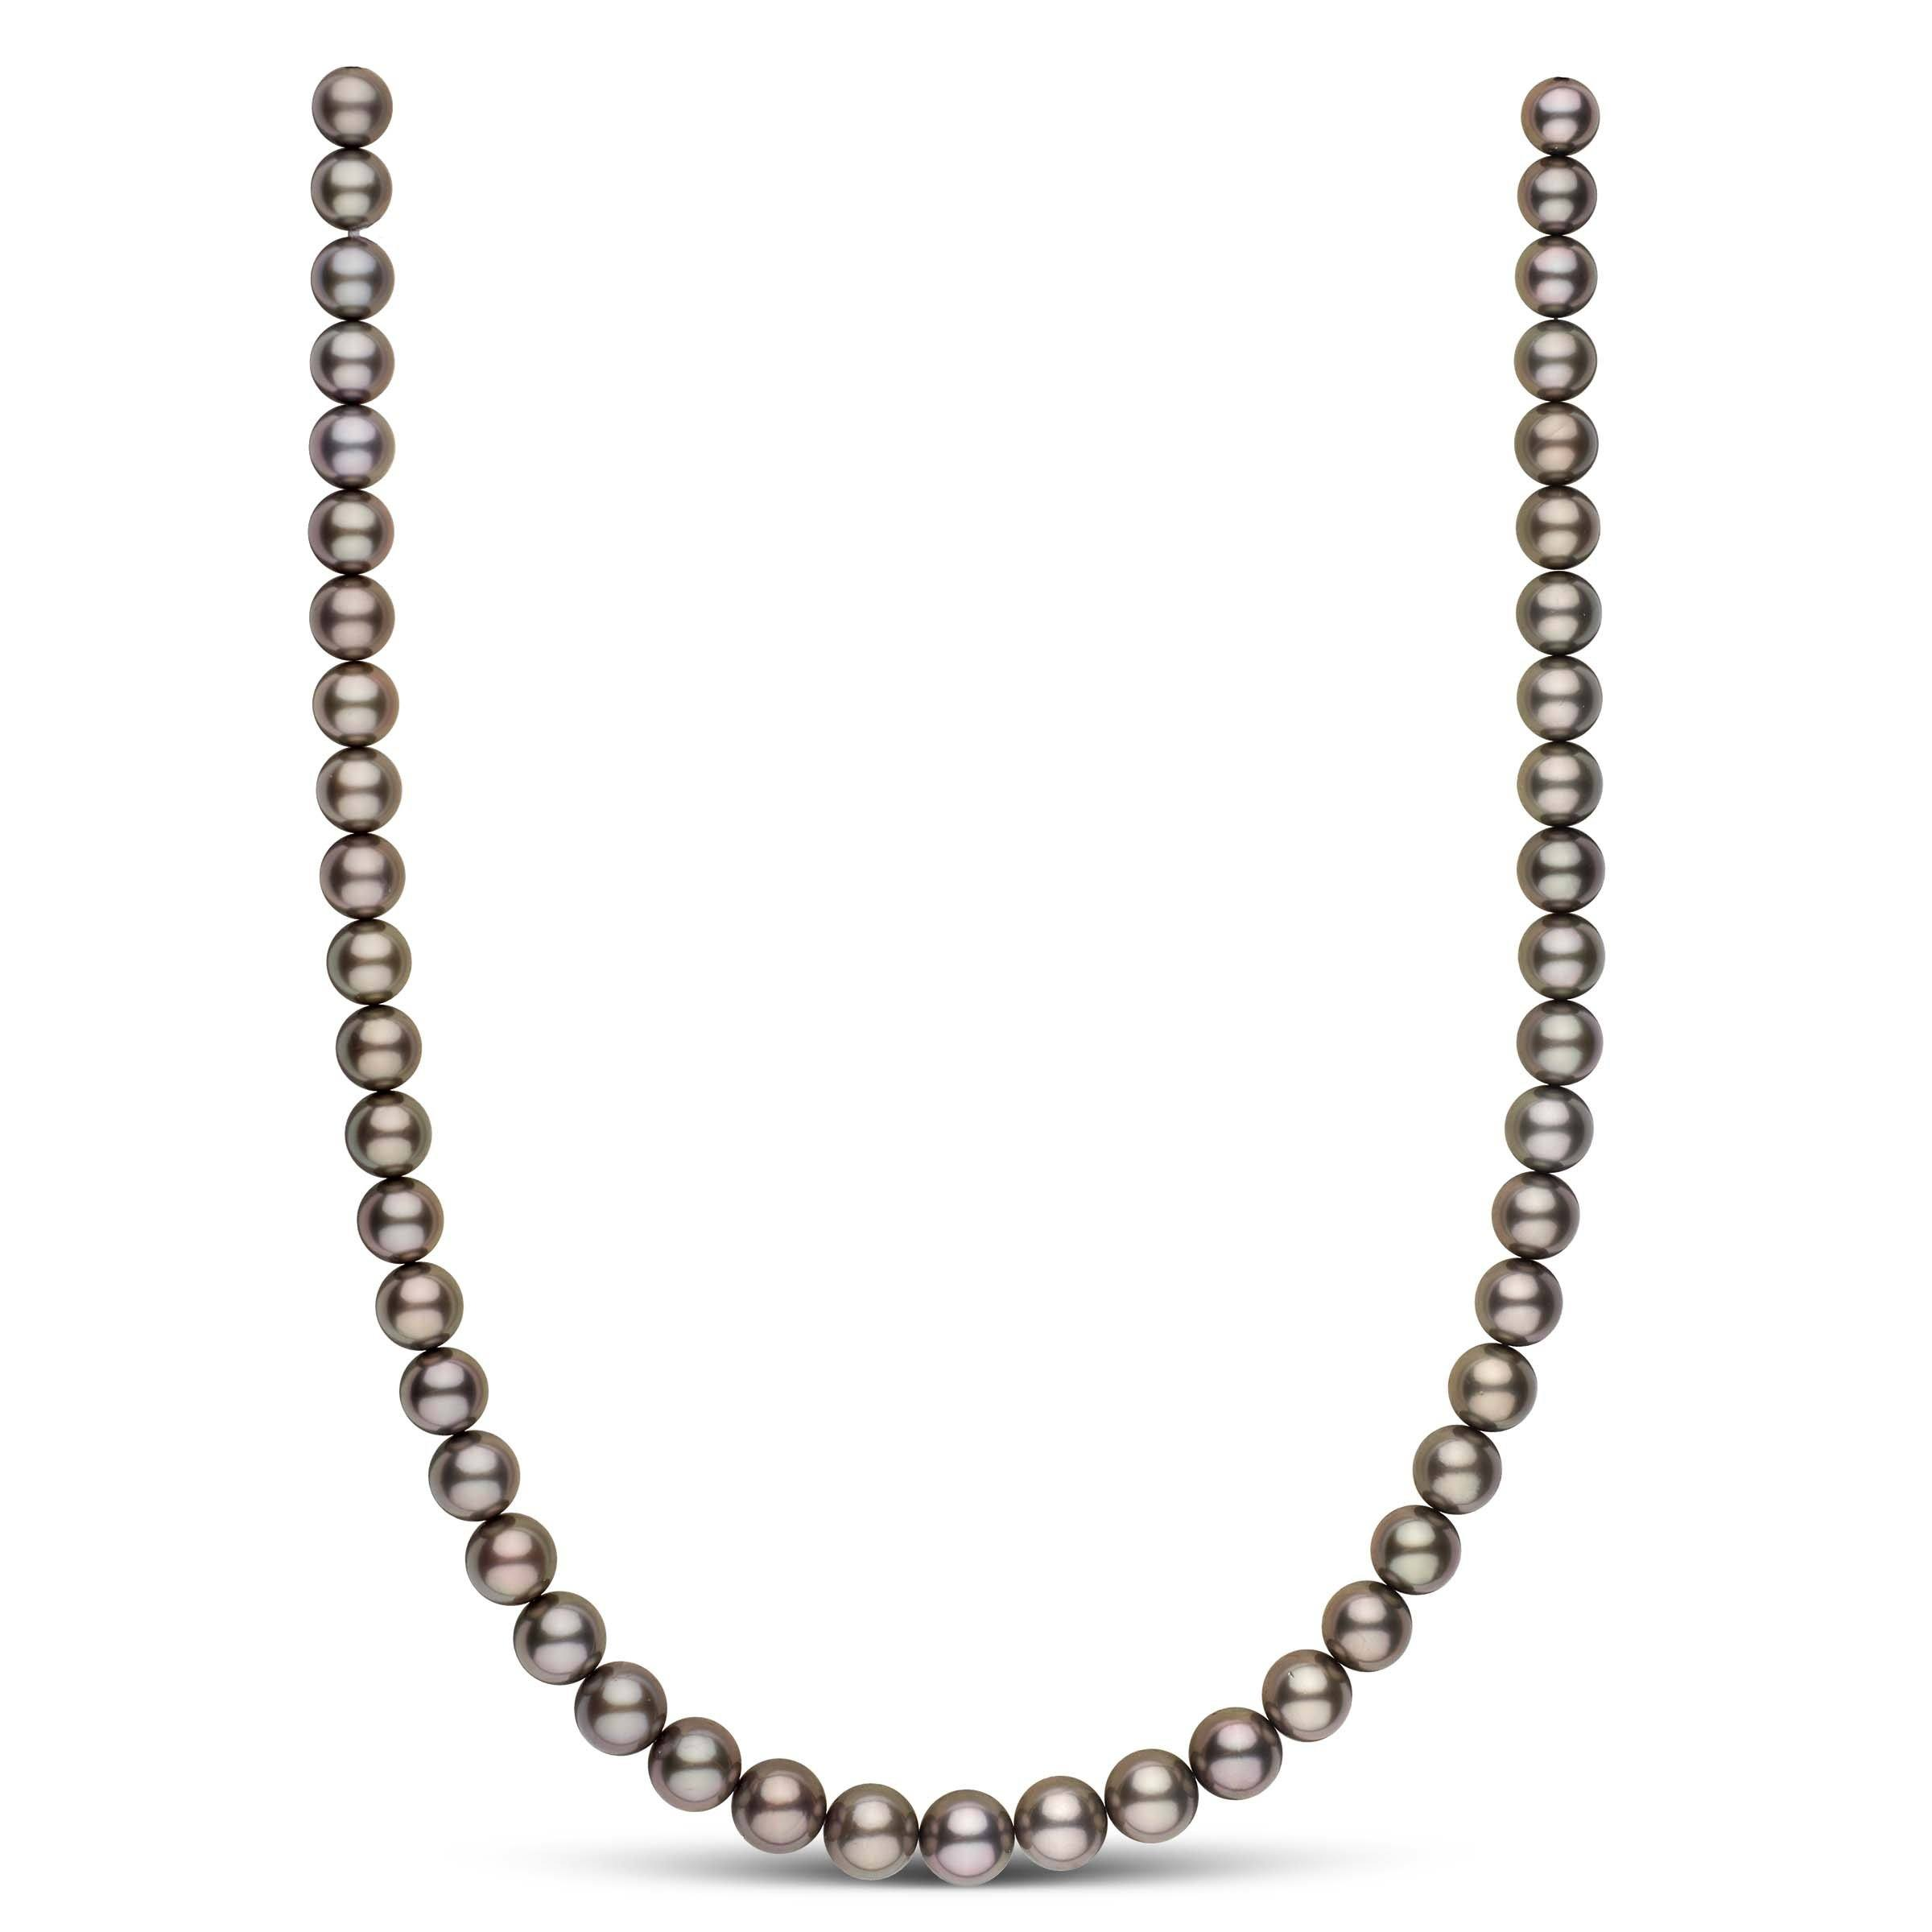 18-inch 8.1-9.8 mm AA+/AAA Round Tahitian Pearl Necklace